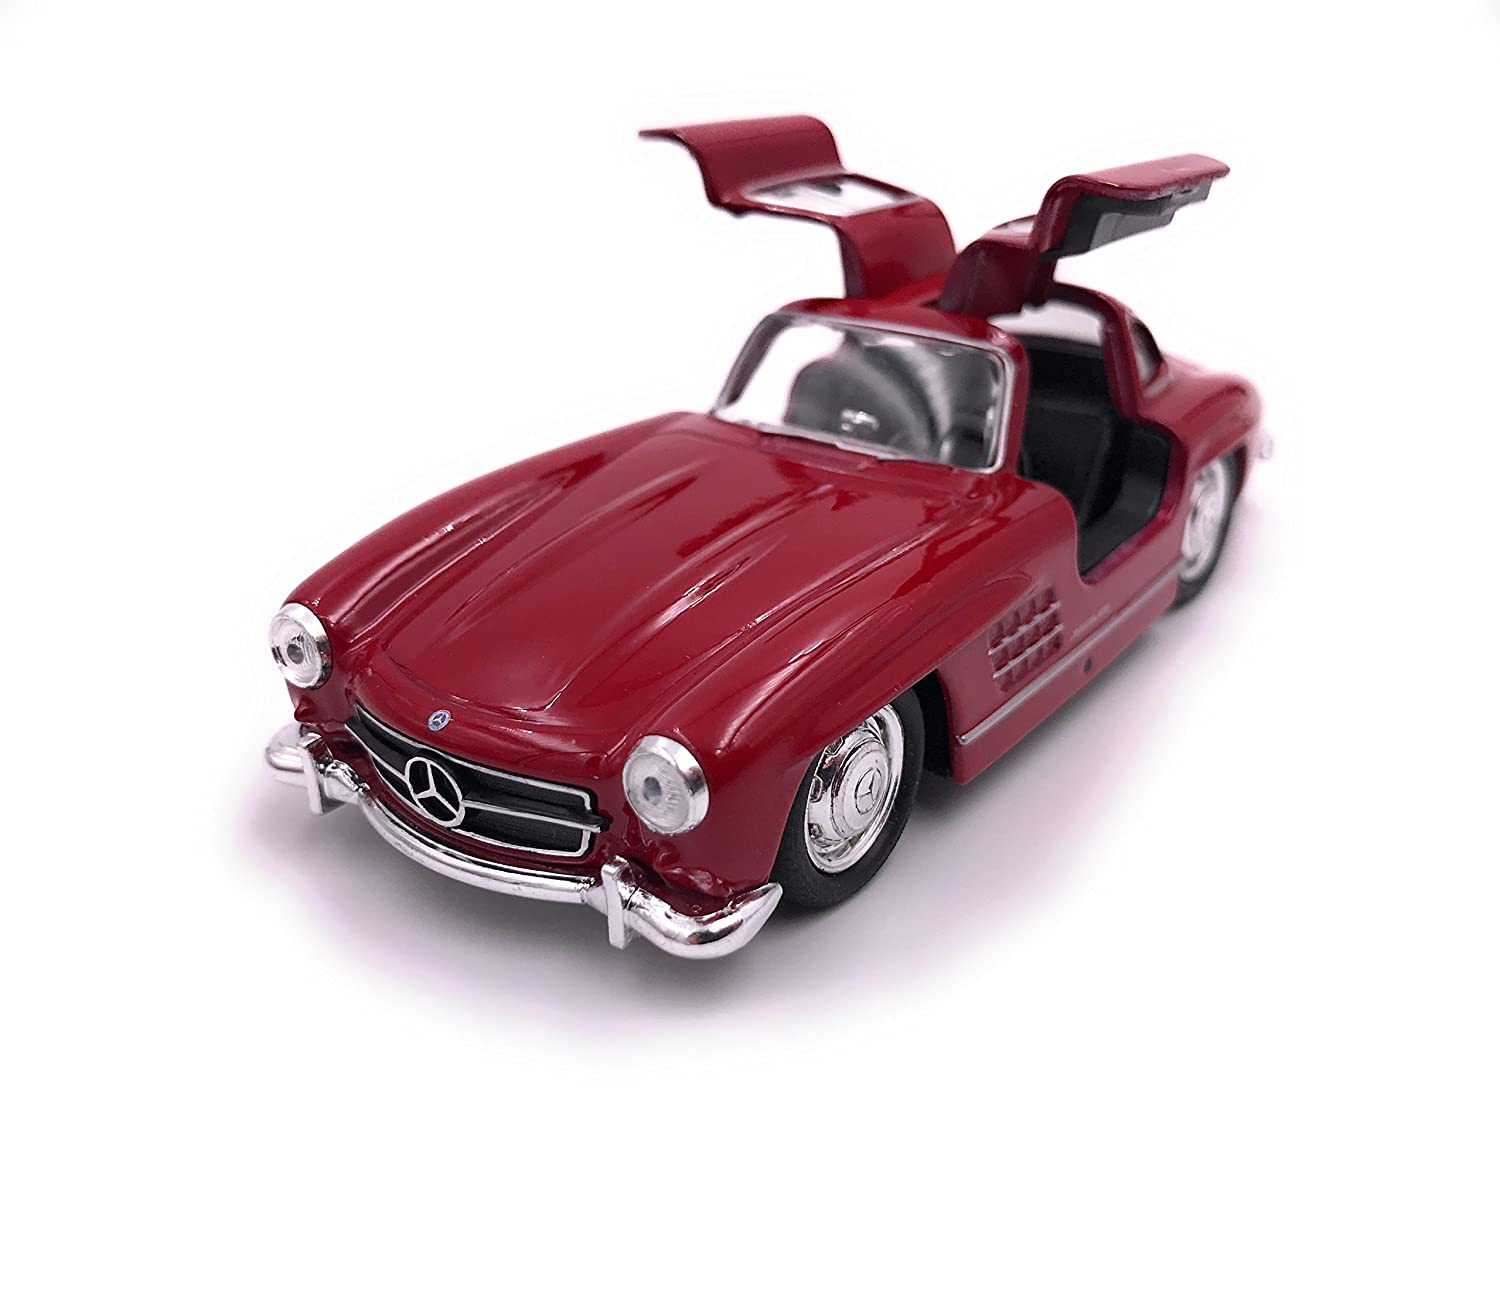 H-Customs Bilancia per Auto Modello Welly Mercedes Benz 300 SL Scala 1:34 Colore Casuale